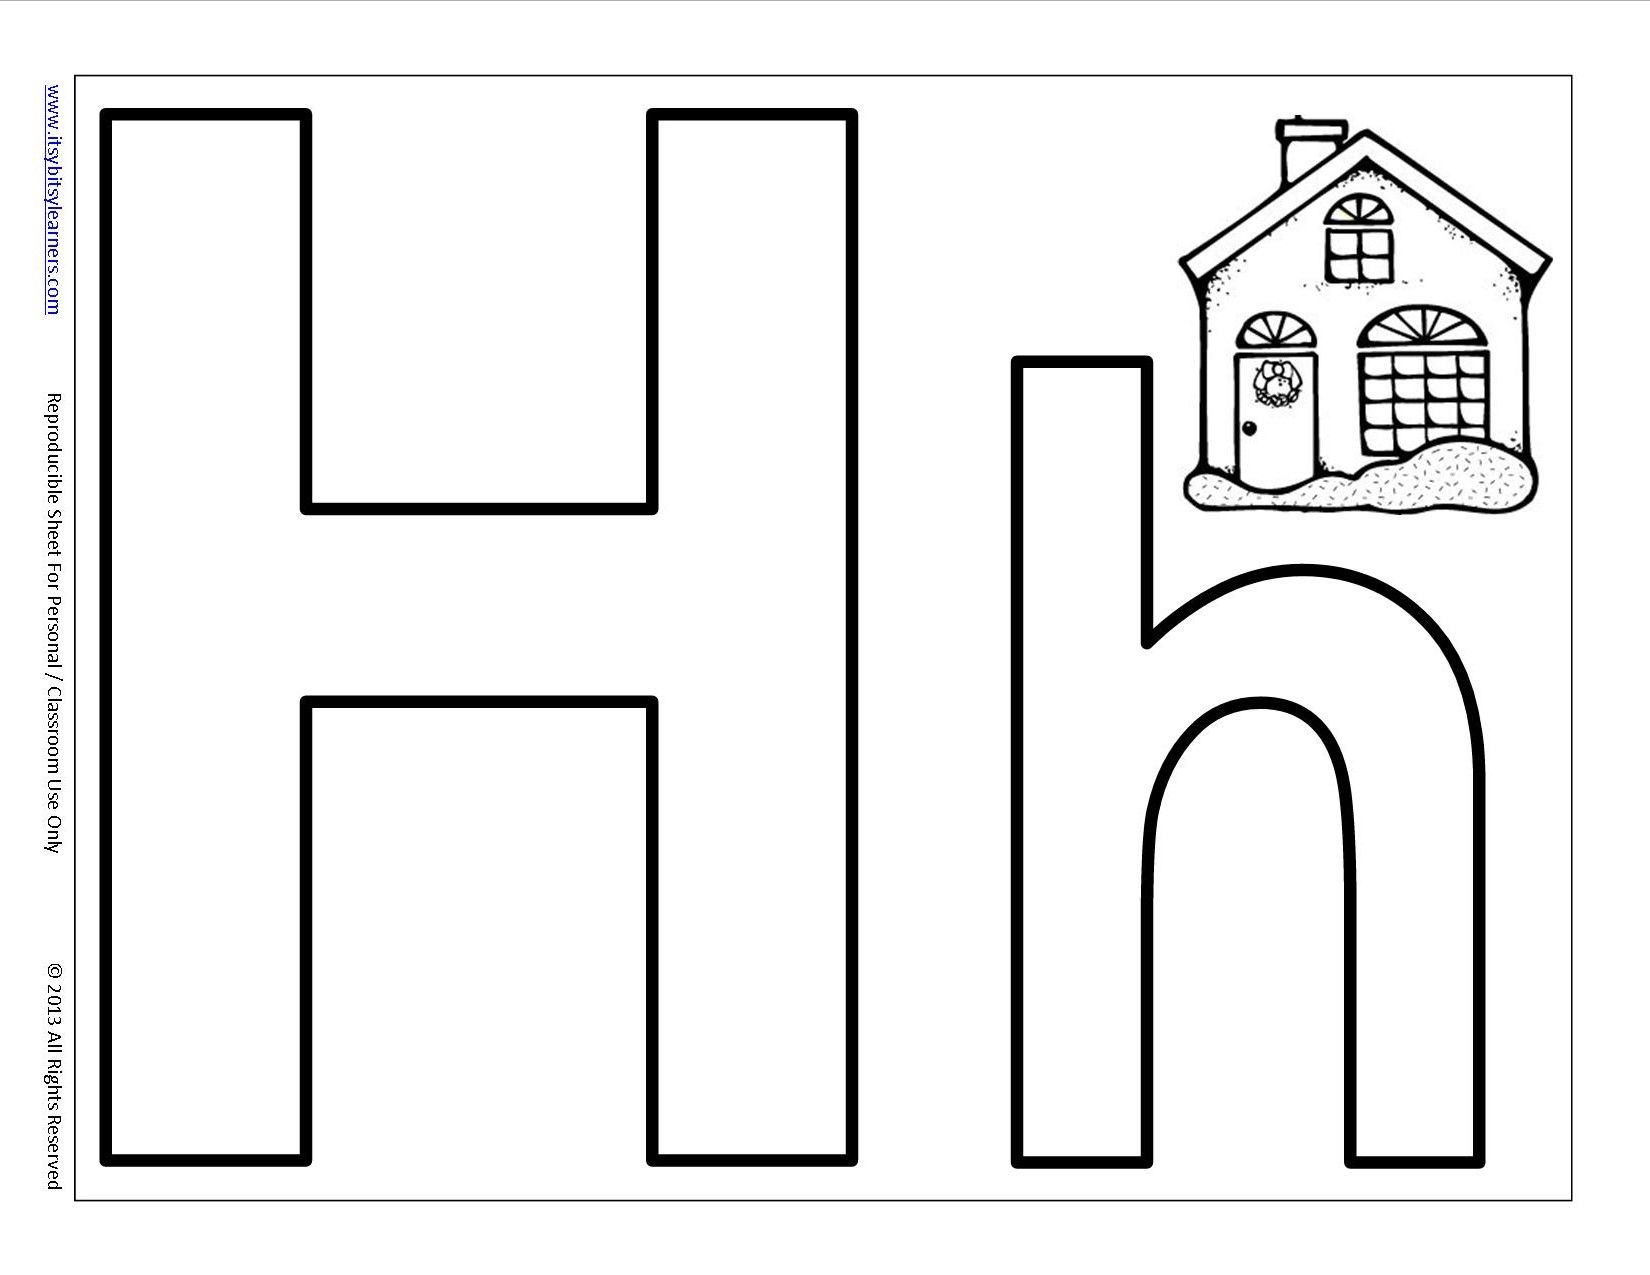 13 best ideas about letter h on pinterest the alphabet crafts and hot dogs